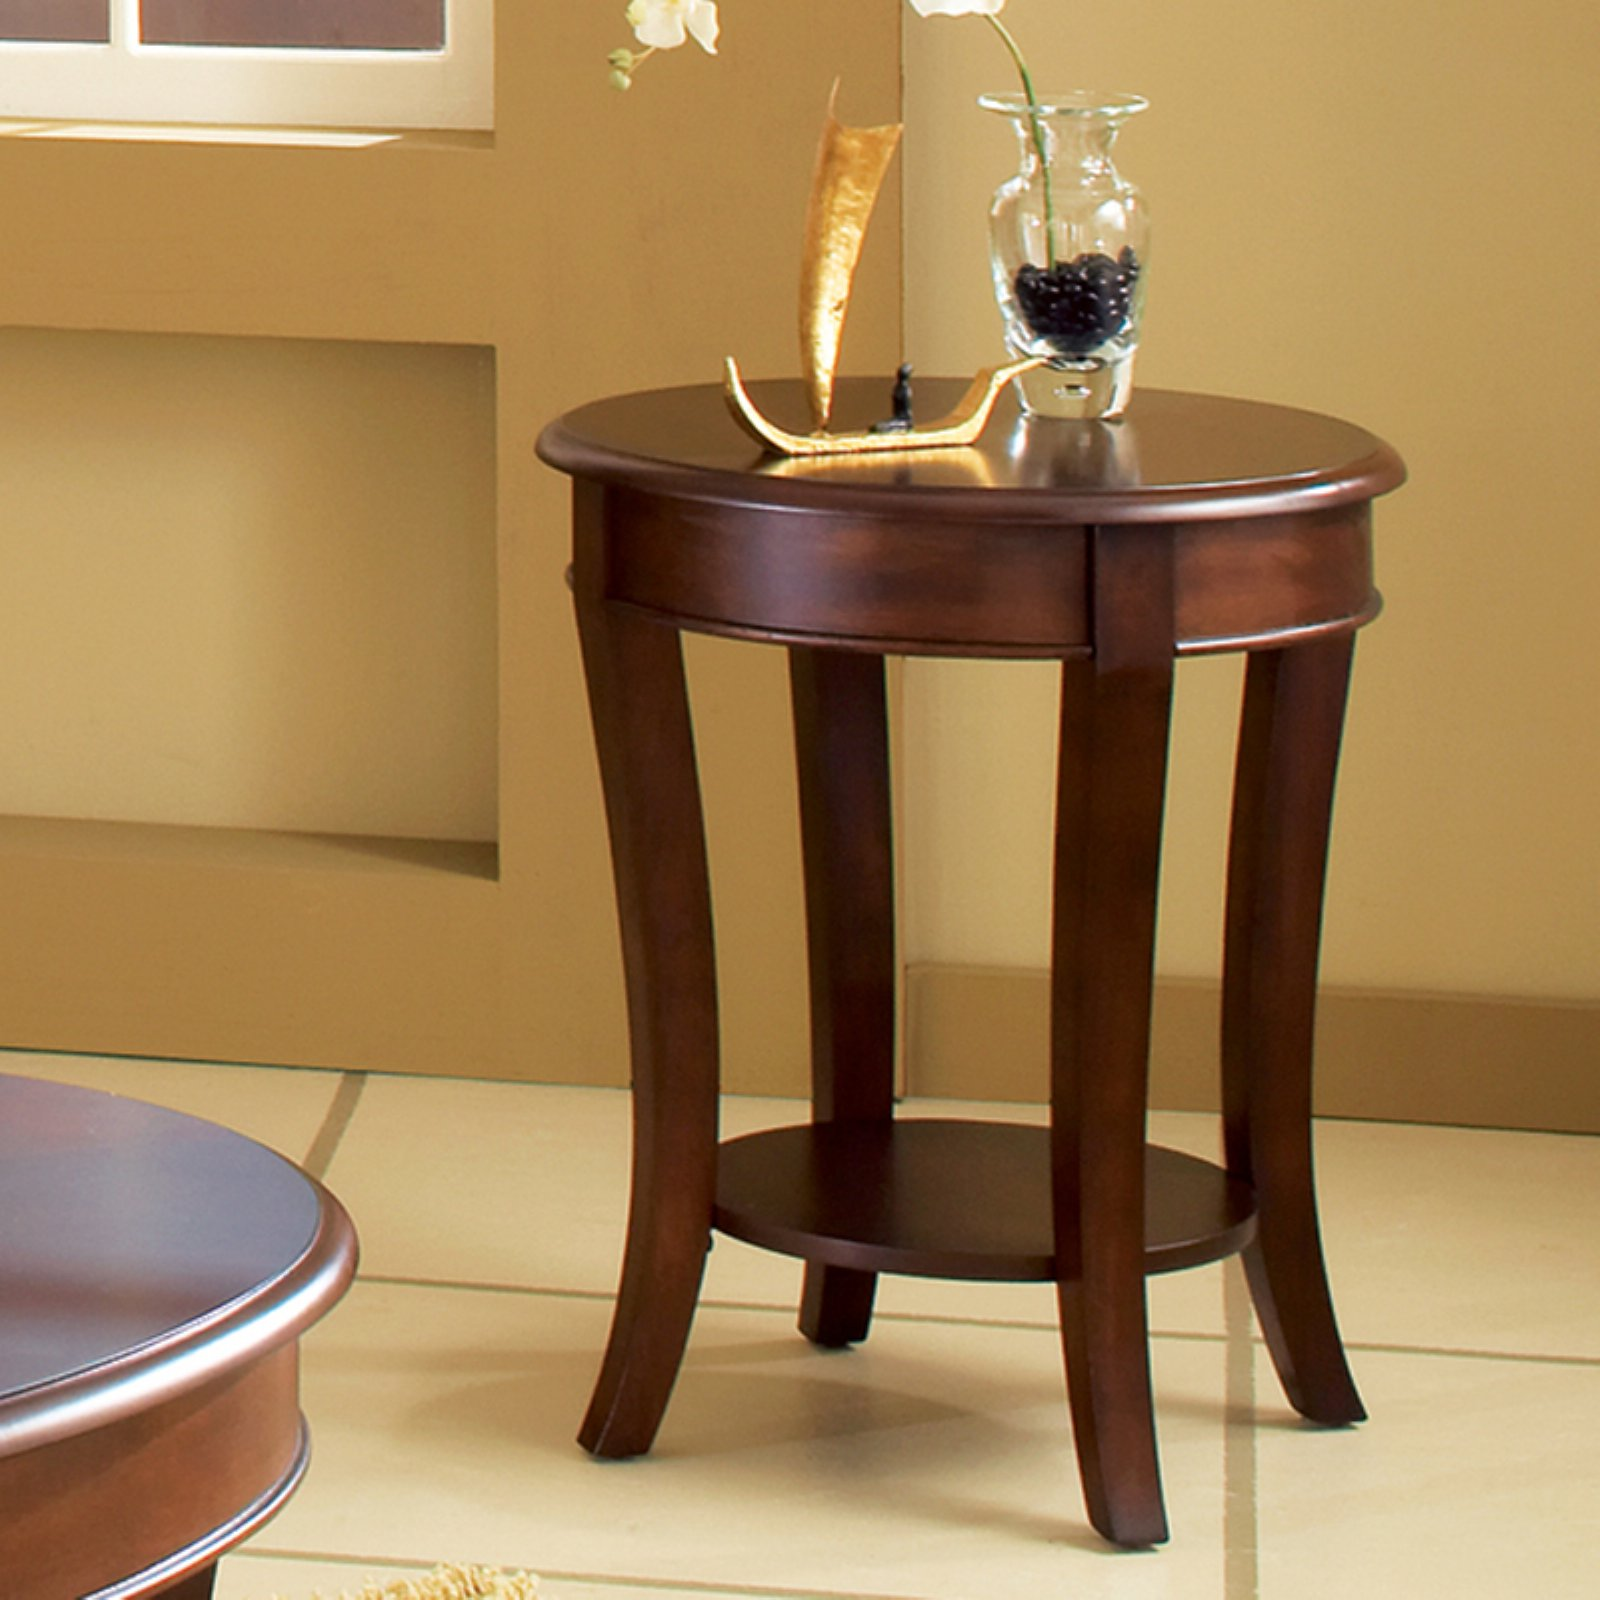 Superb Steve Silver Troy Round Cherry Wood End Table